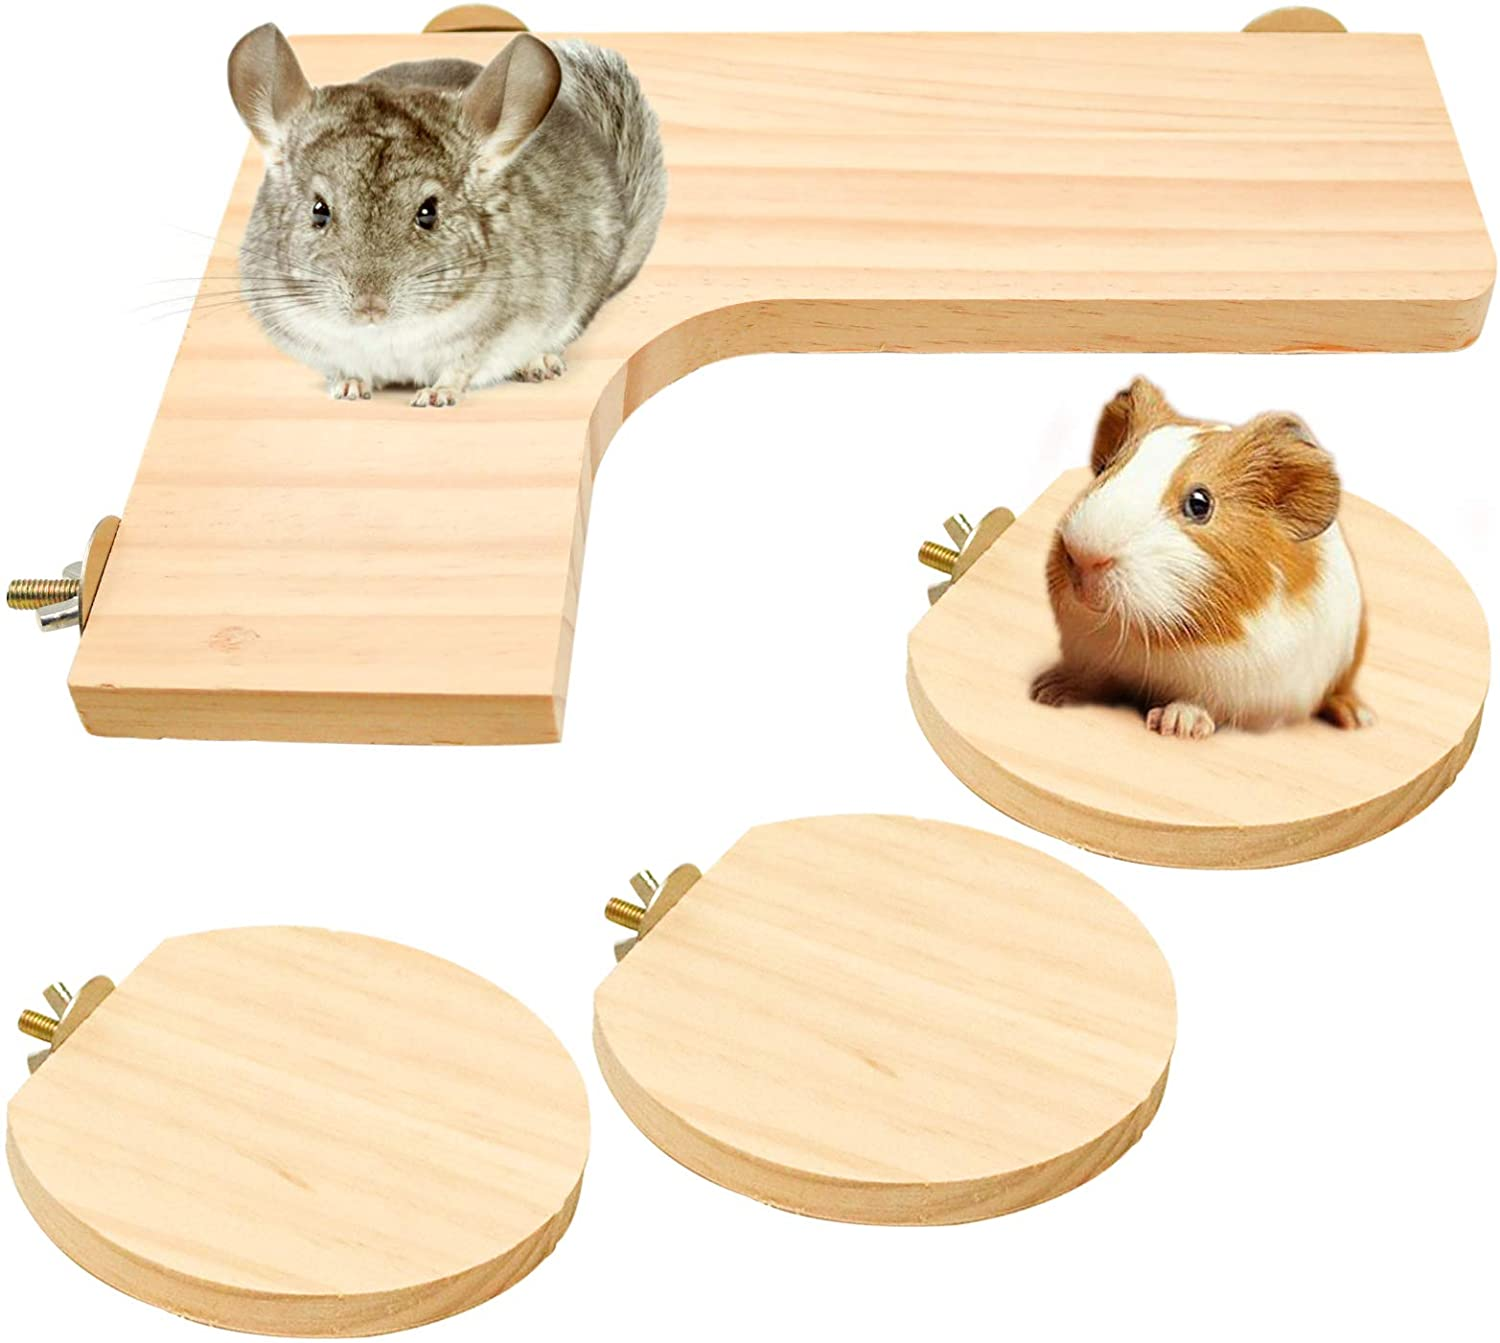 Squirrel Gerbil Chinchilla and Dwarf Hamster L-Shaped Pedal Wooden Platform, 3 Pieces of Natural Wooden Parrot Hamster Round Standing Board, Rat Activity Chinchilla Bird Cage Accessories